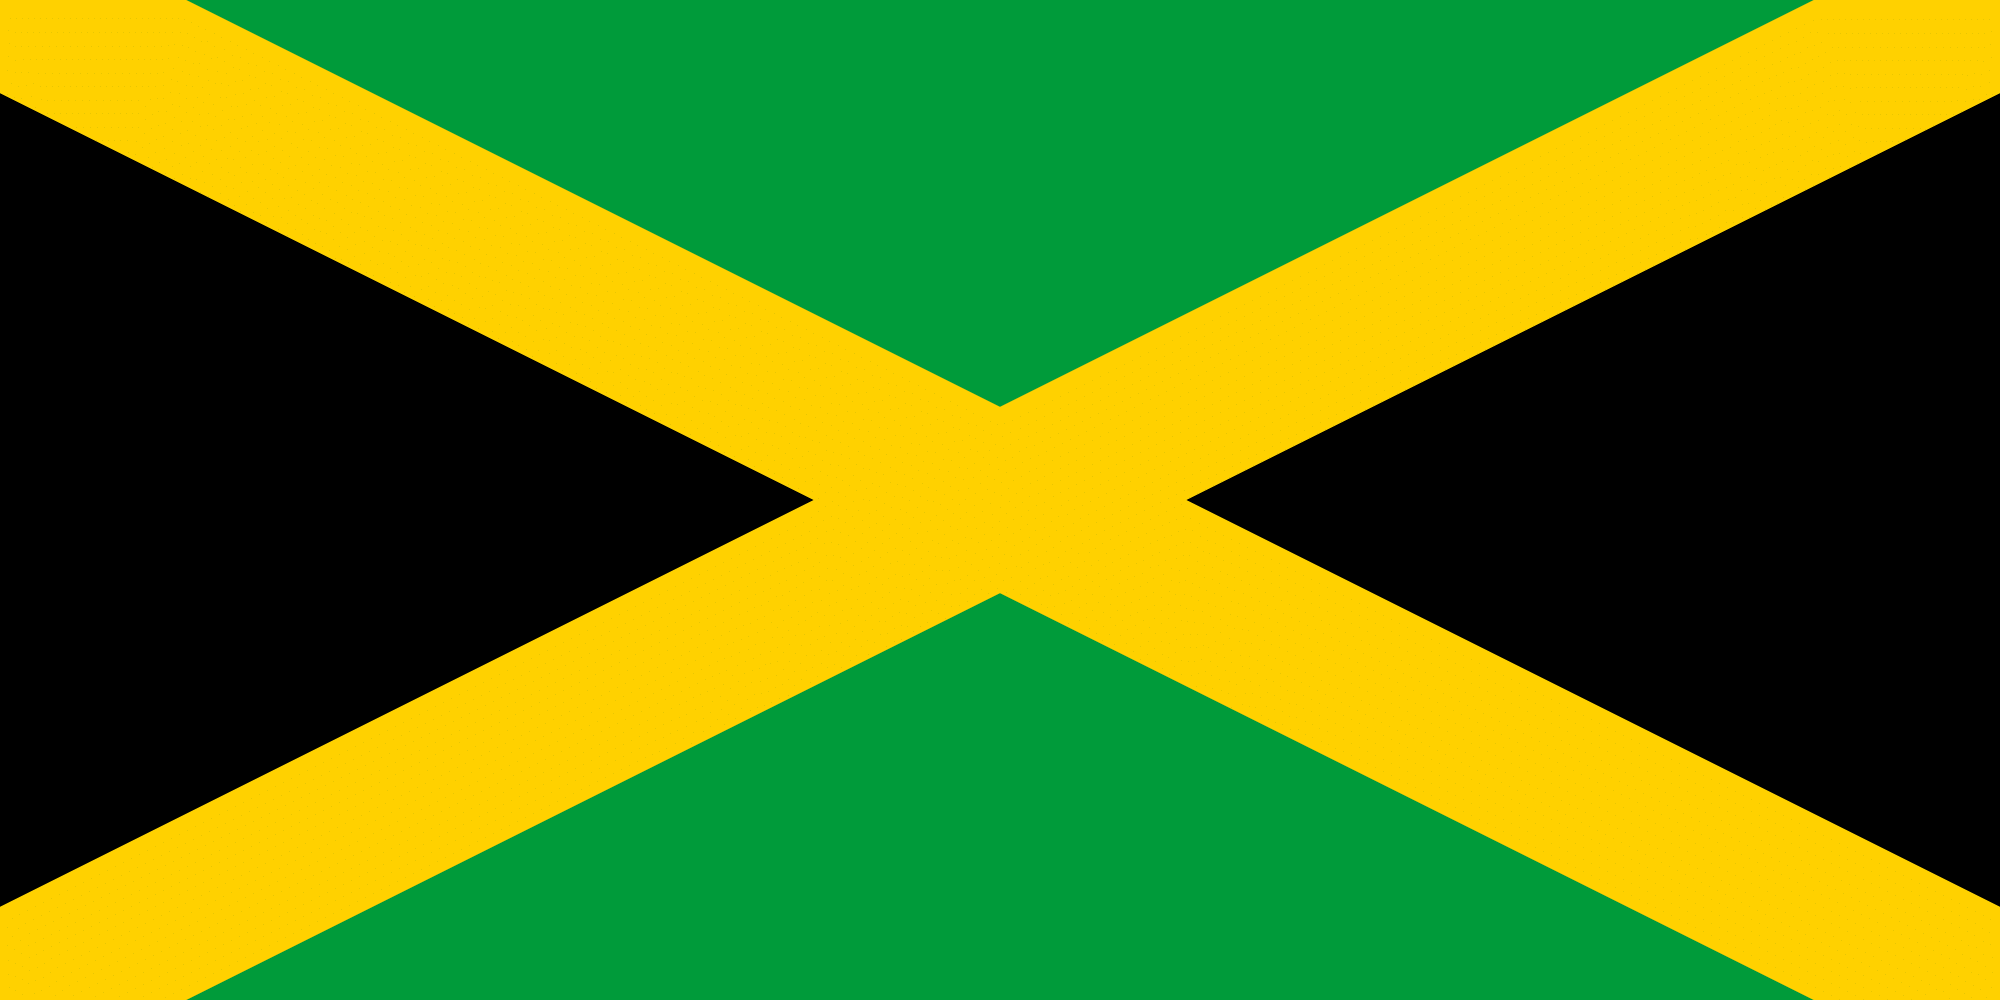 How many colors does the Jamaican Flag have?